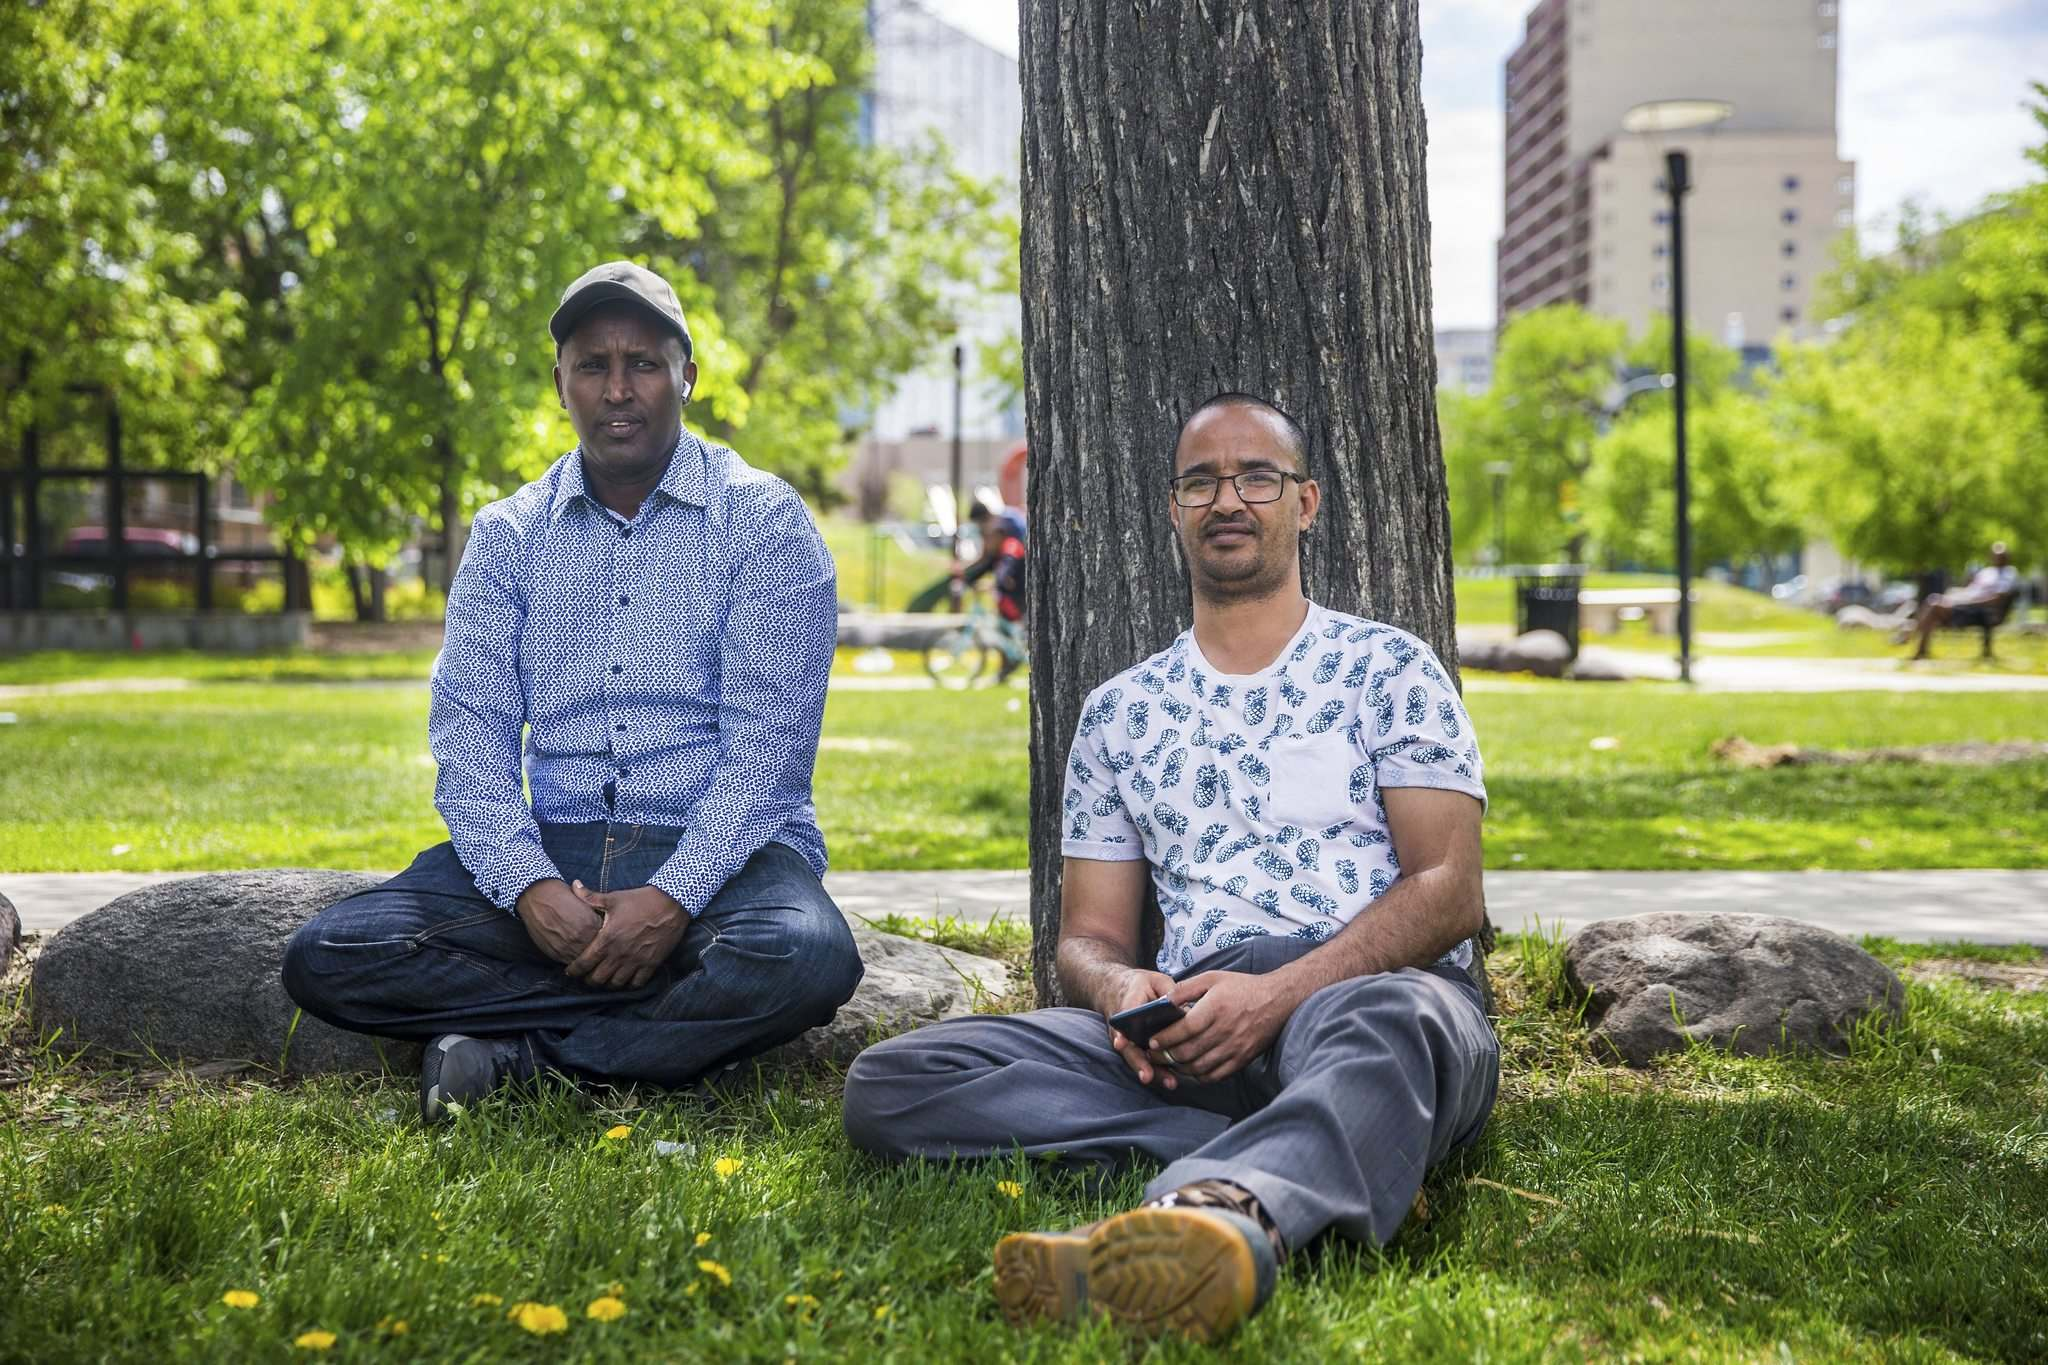 Nuun Ahmed (left) and Said Harir Omar talk about race, skin colour, and discrimination at Central Park.